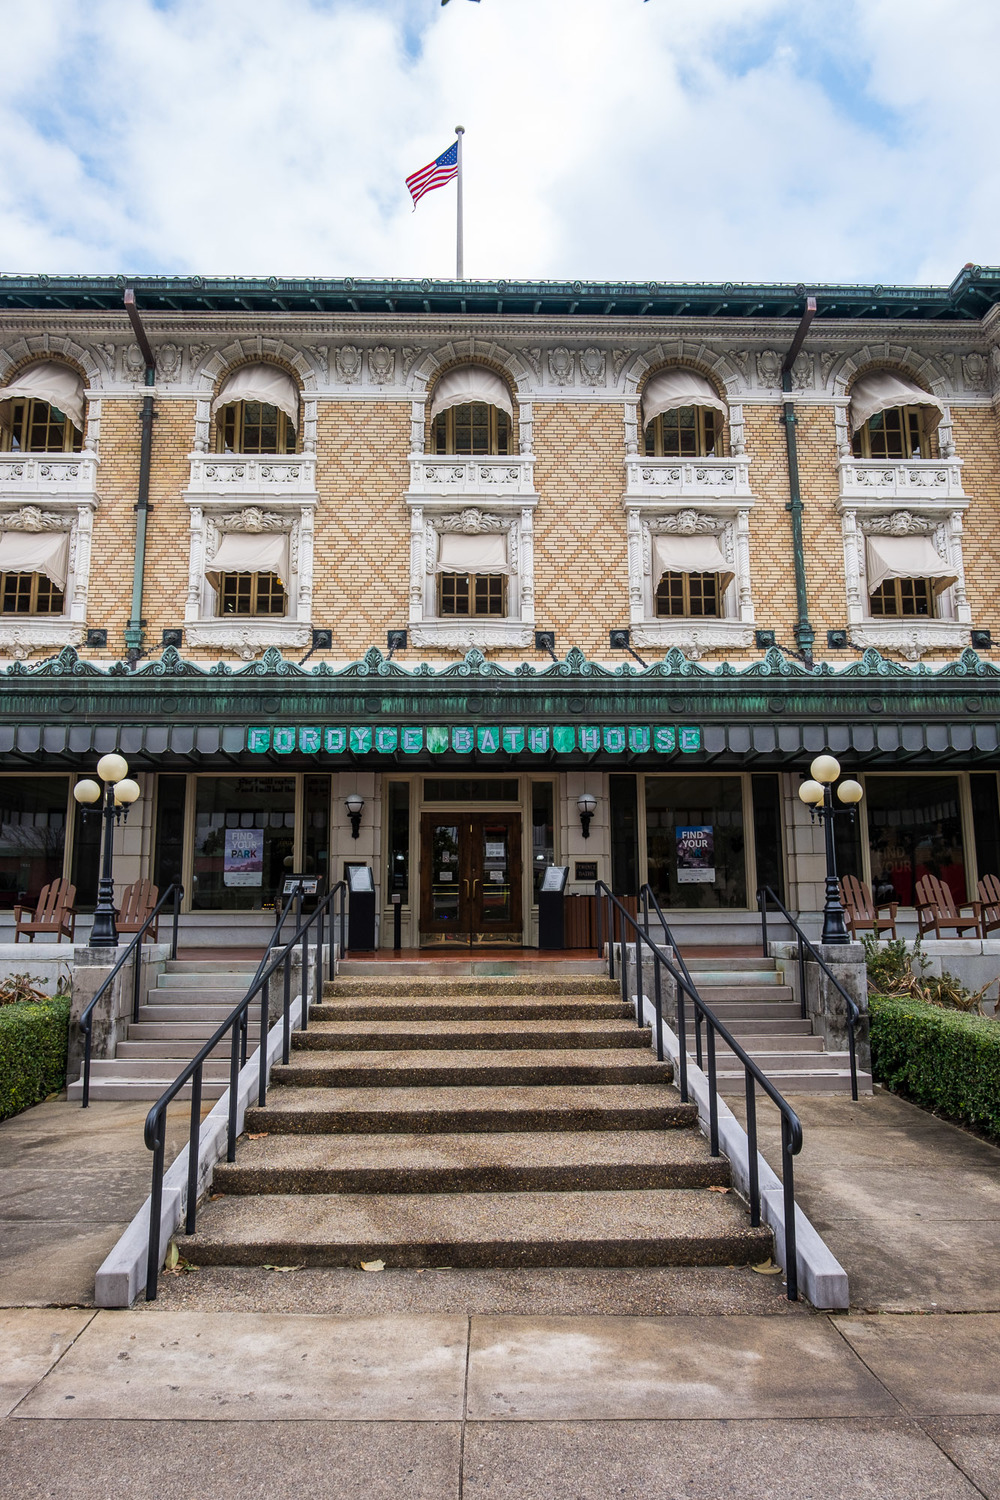 The National Park visitor center is located in the old Fordyce Bath House, which is beautifully restored and an easy visit.